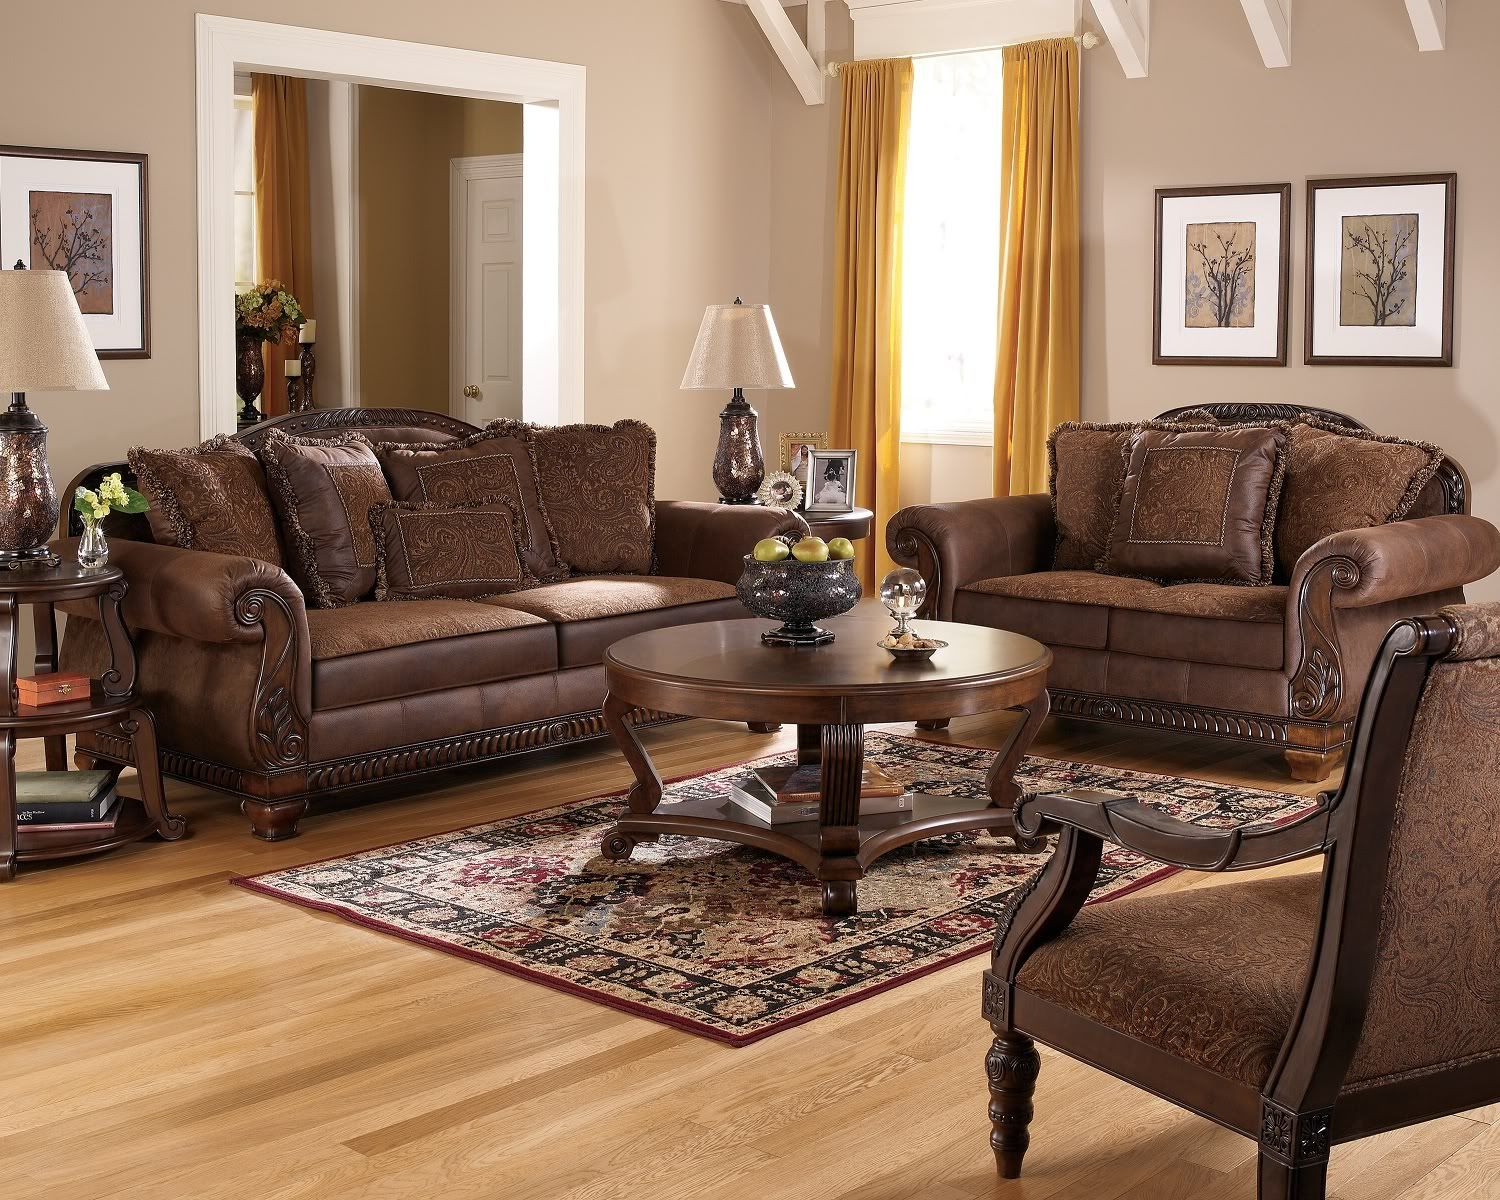 Cozy Living Room Furniture With Traditional Leather Sectional Sofa